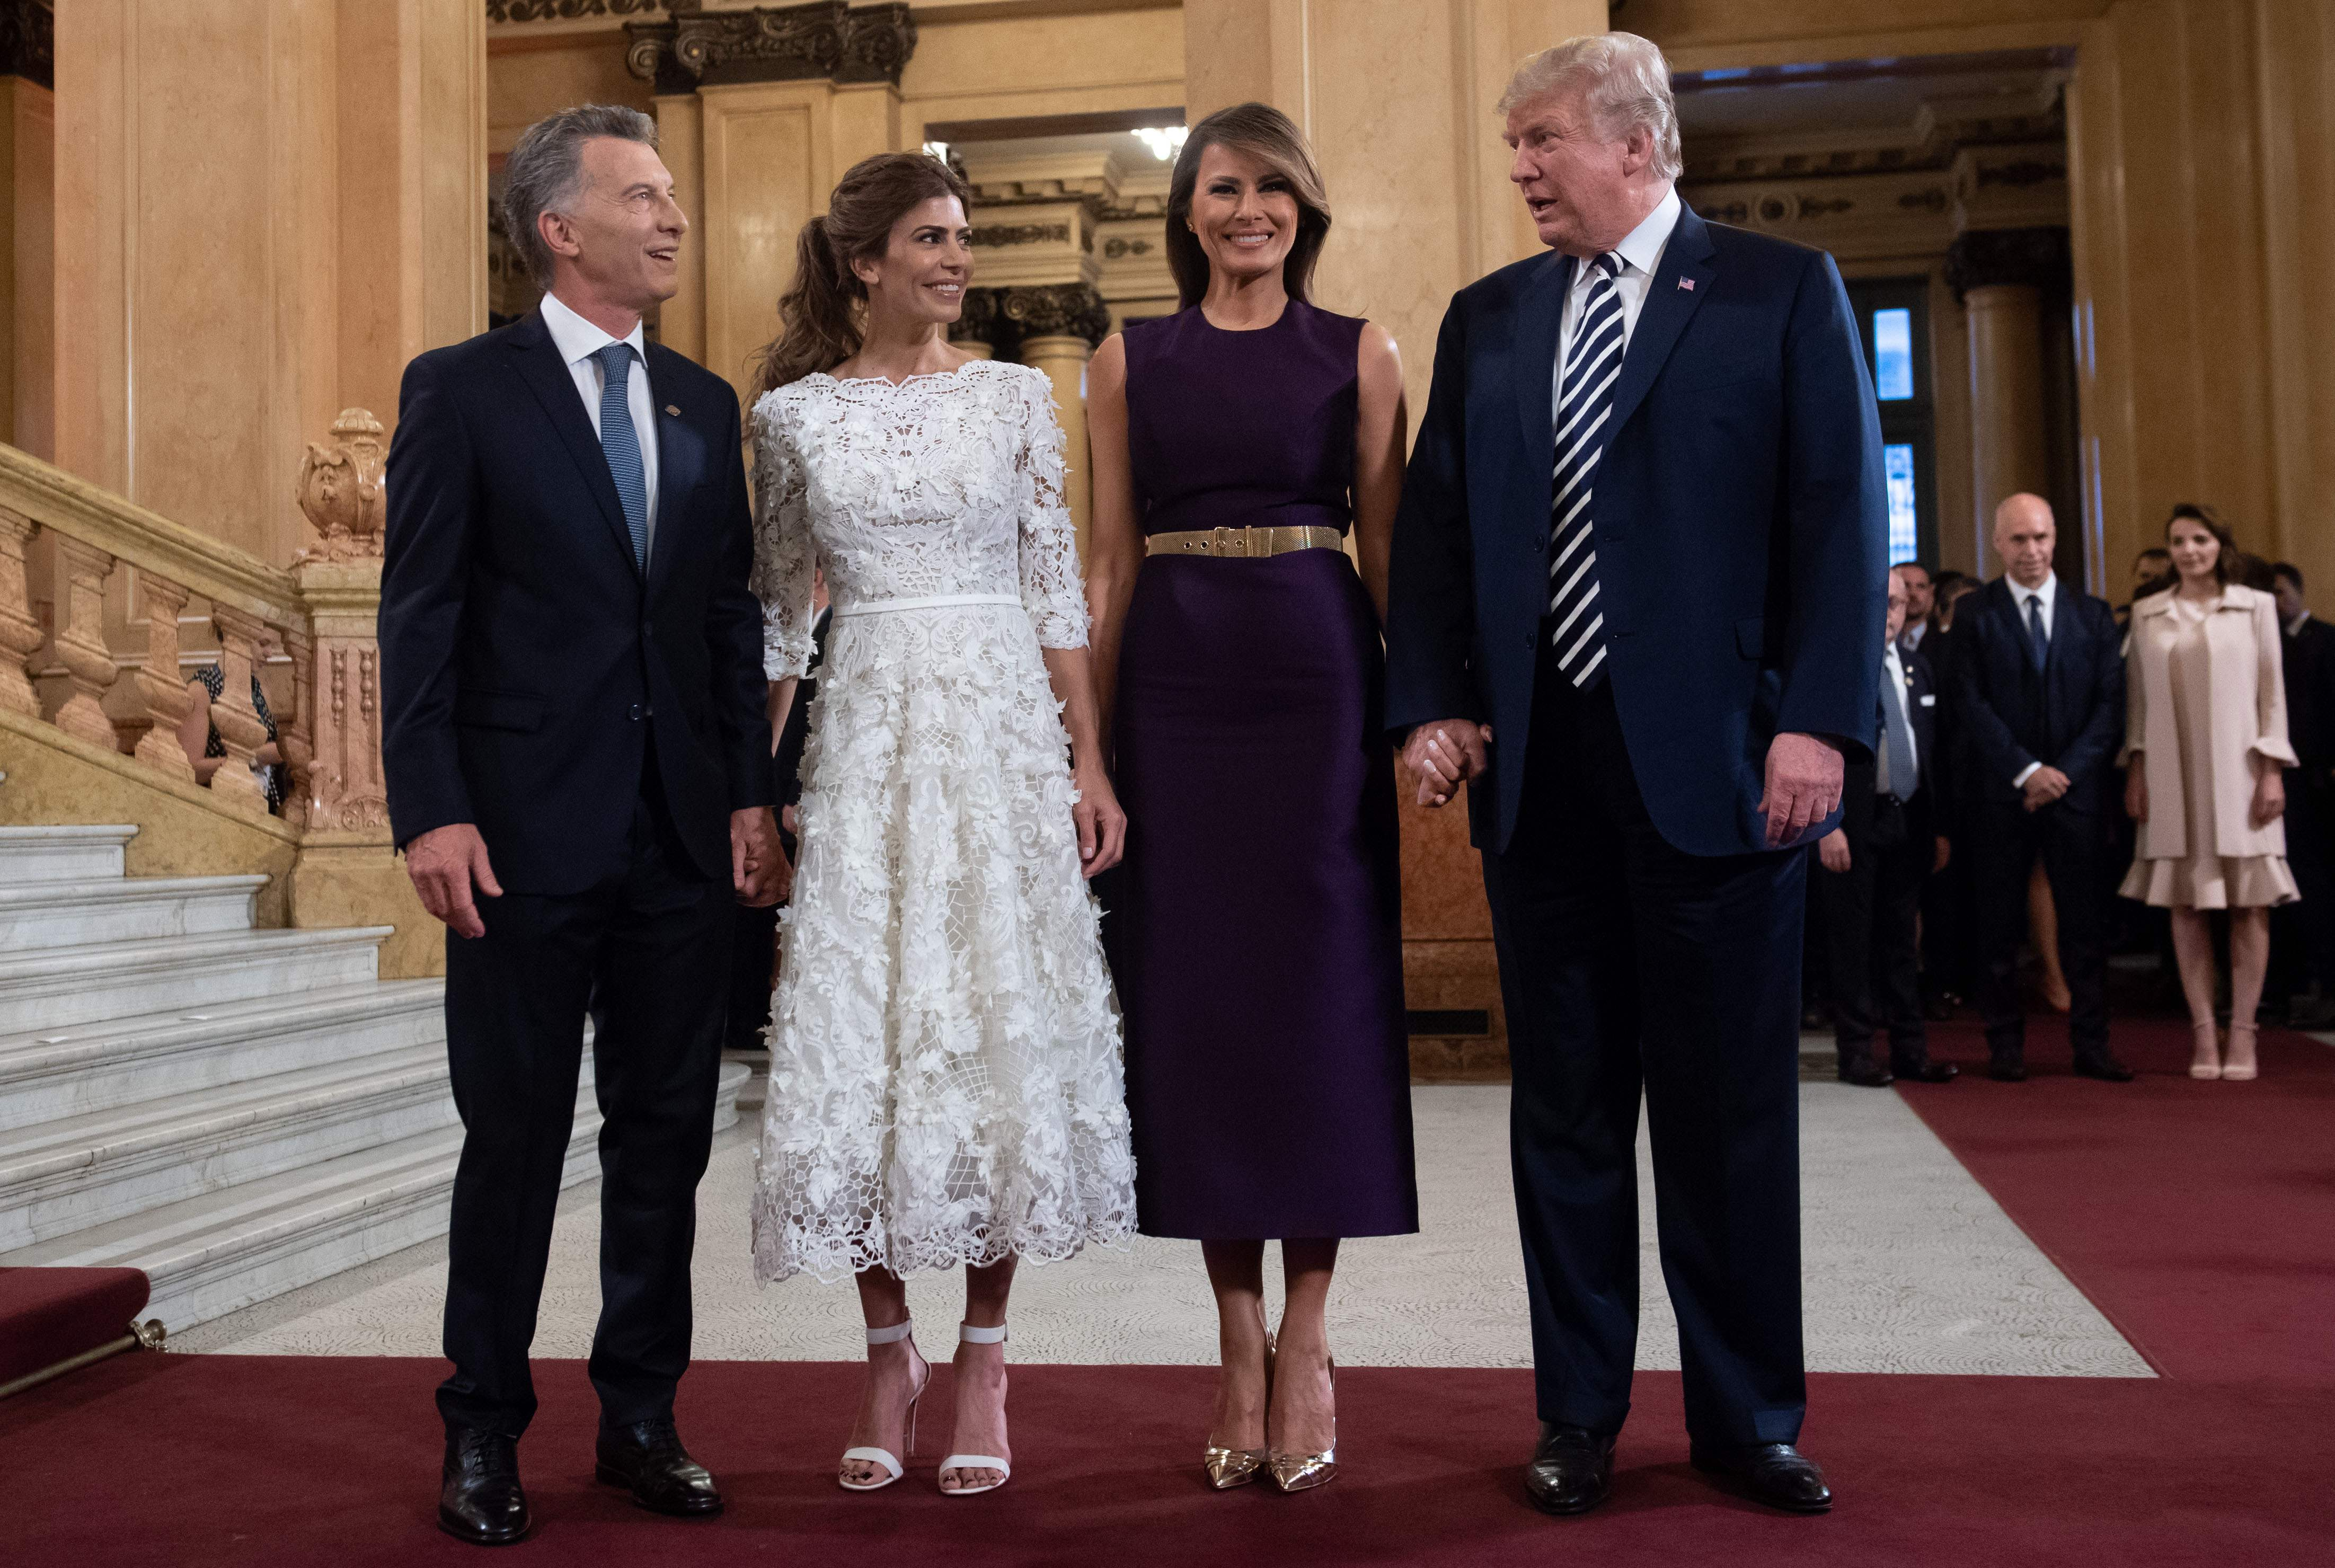 bf9fd5bea Melania Trump's outfit choices are more on the nose than off the cuff  during U.K. visit - The Washington Post